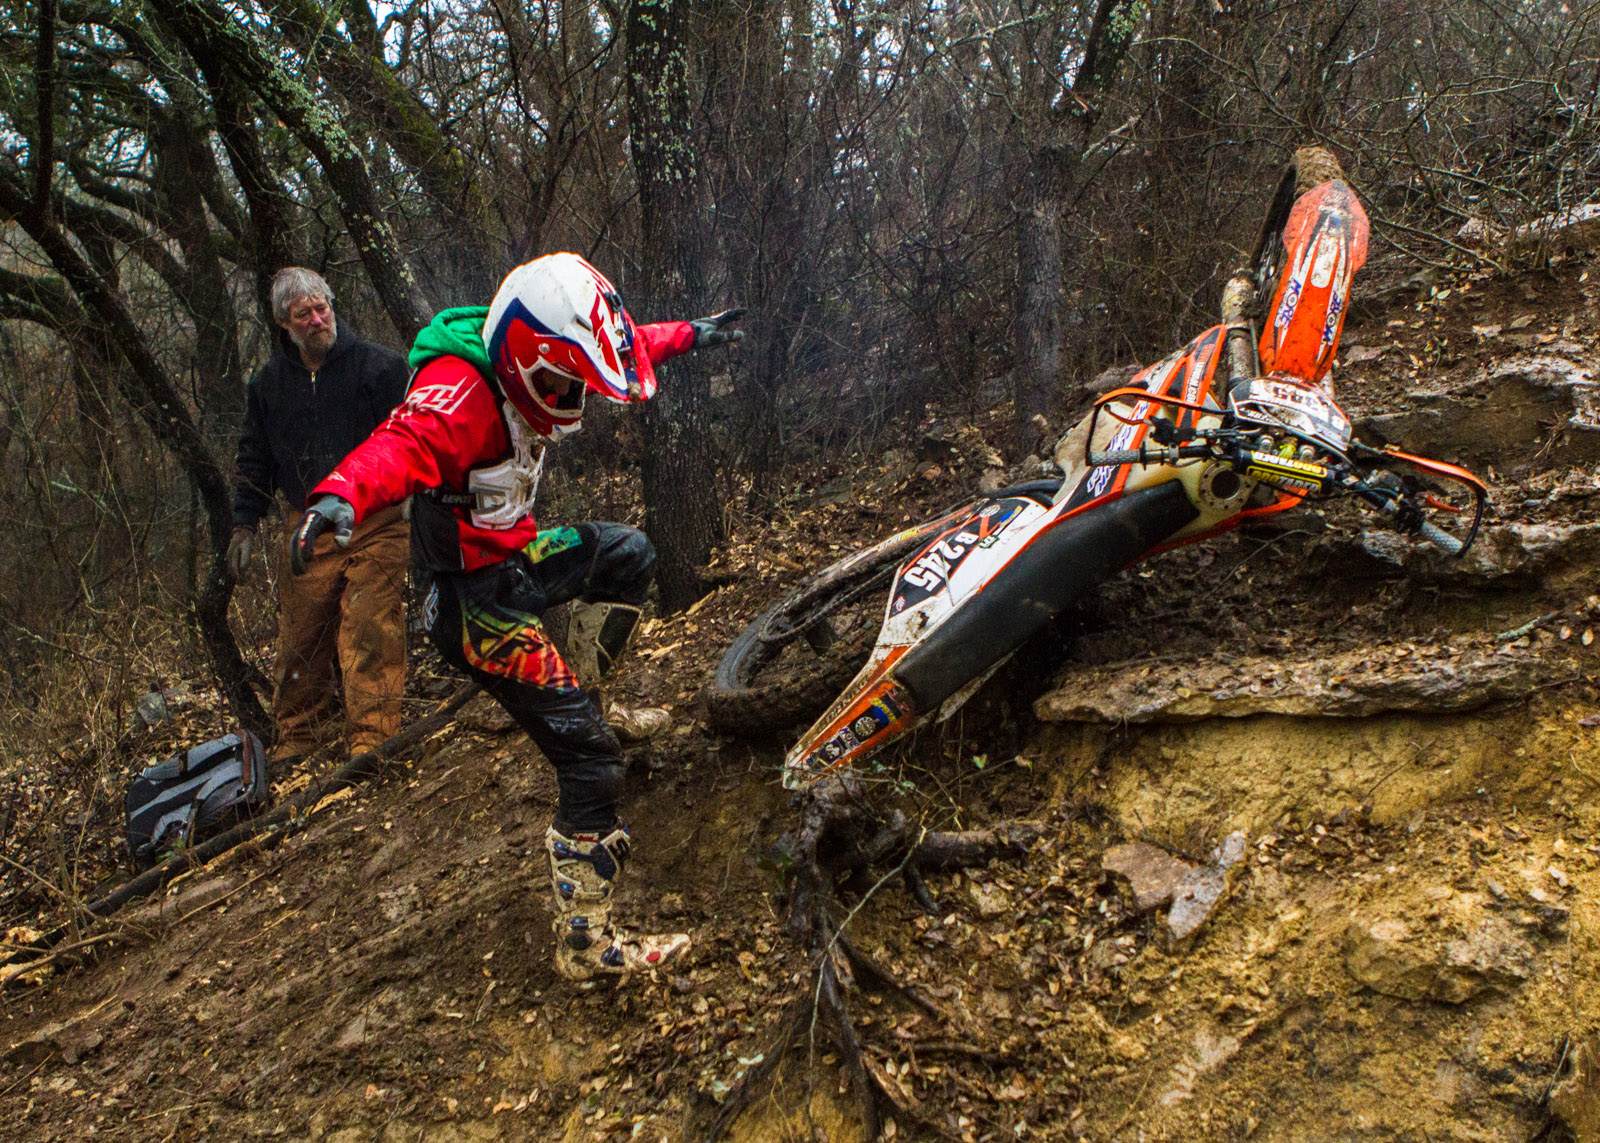 revlimiter-extreme-enduro-saturday-28